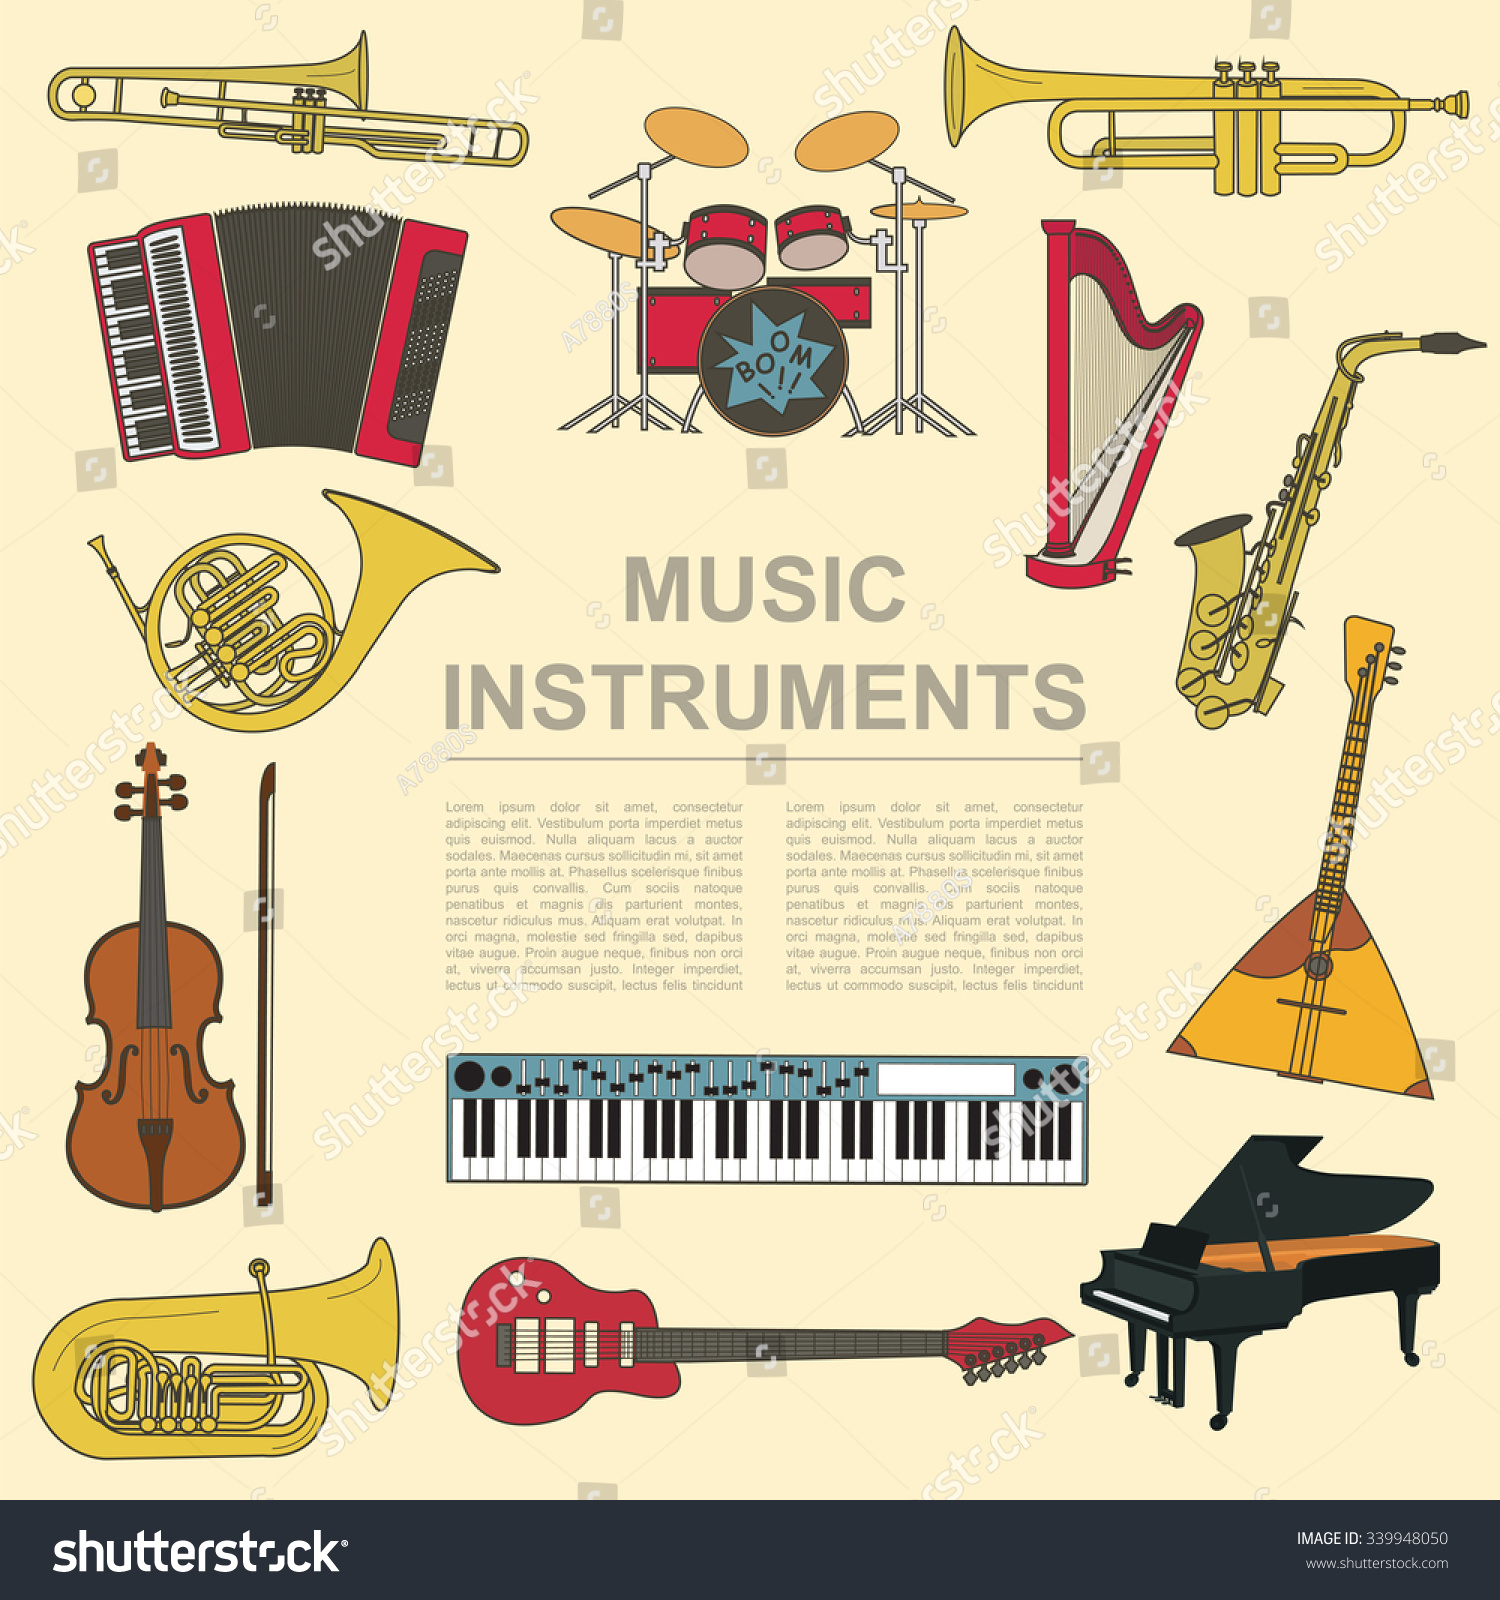 Worksheets Types Of Musical Instrument musical instruments graphic template all types stock vector of infographic illustration